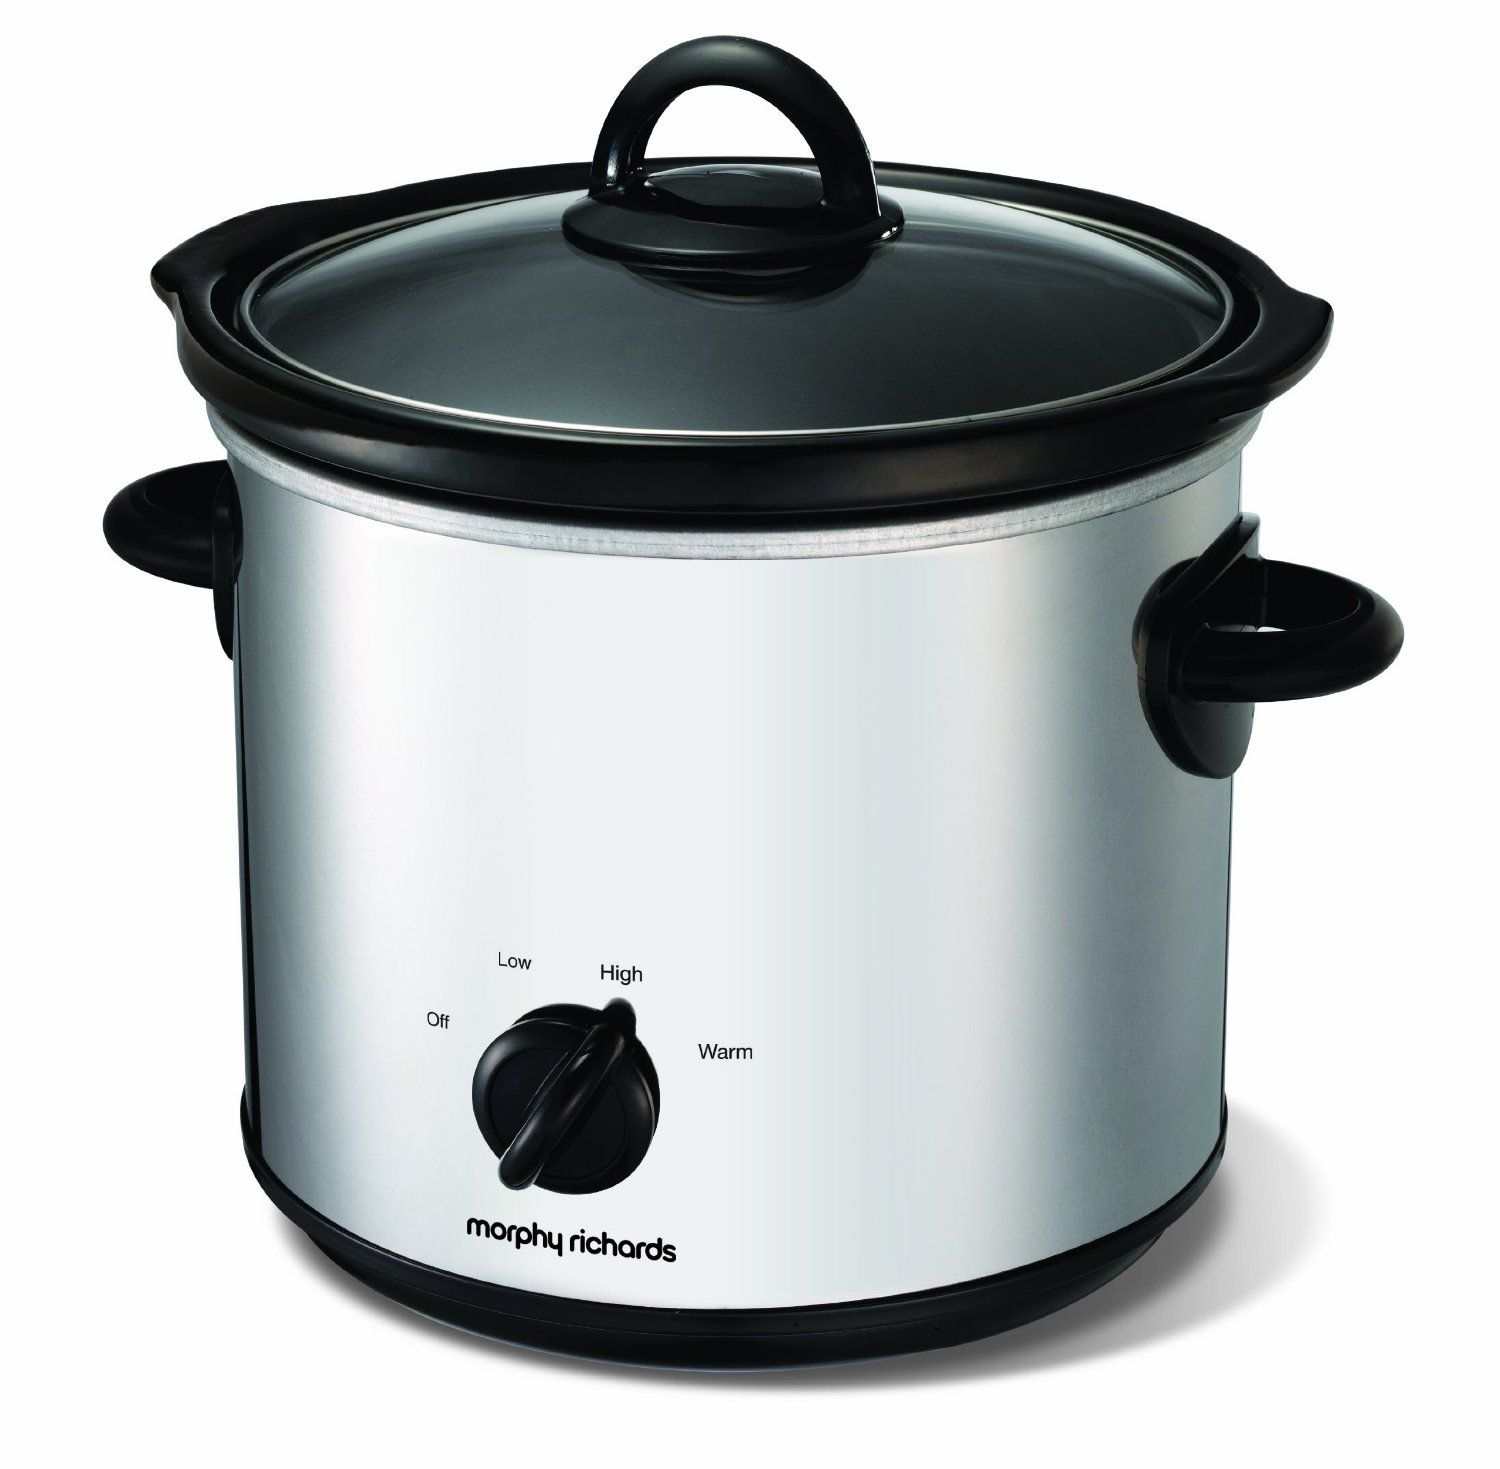 Morphy Richards Slow cooker Select 3.5L